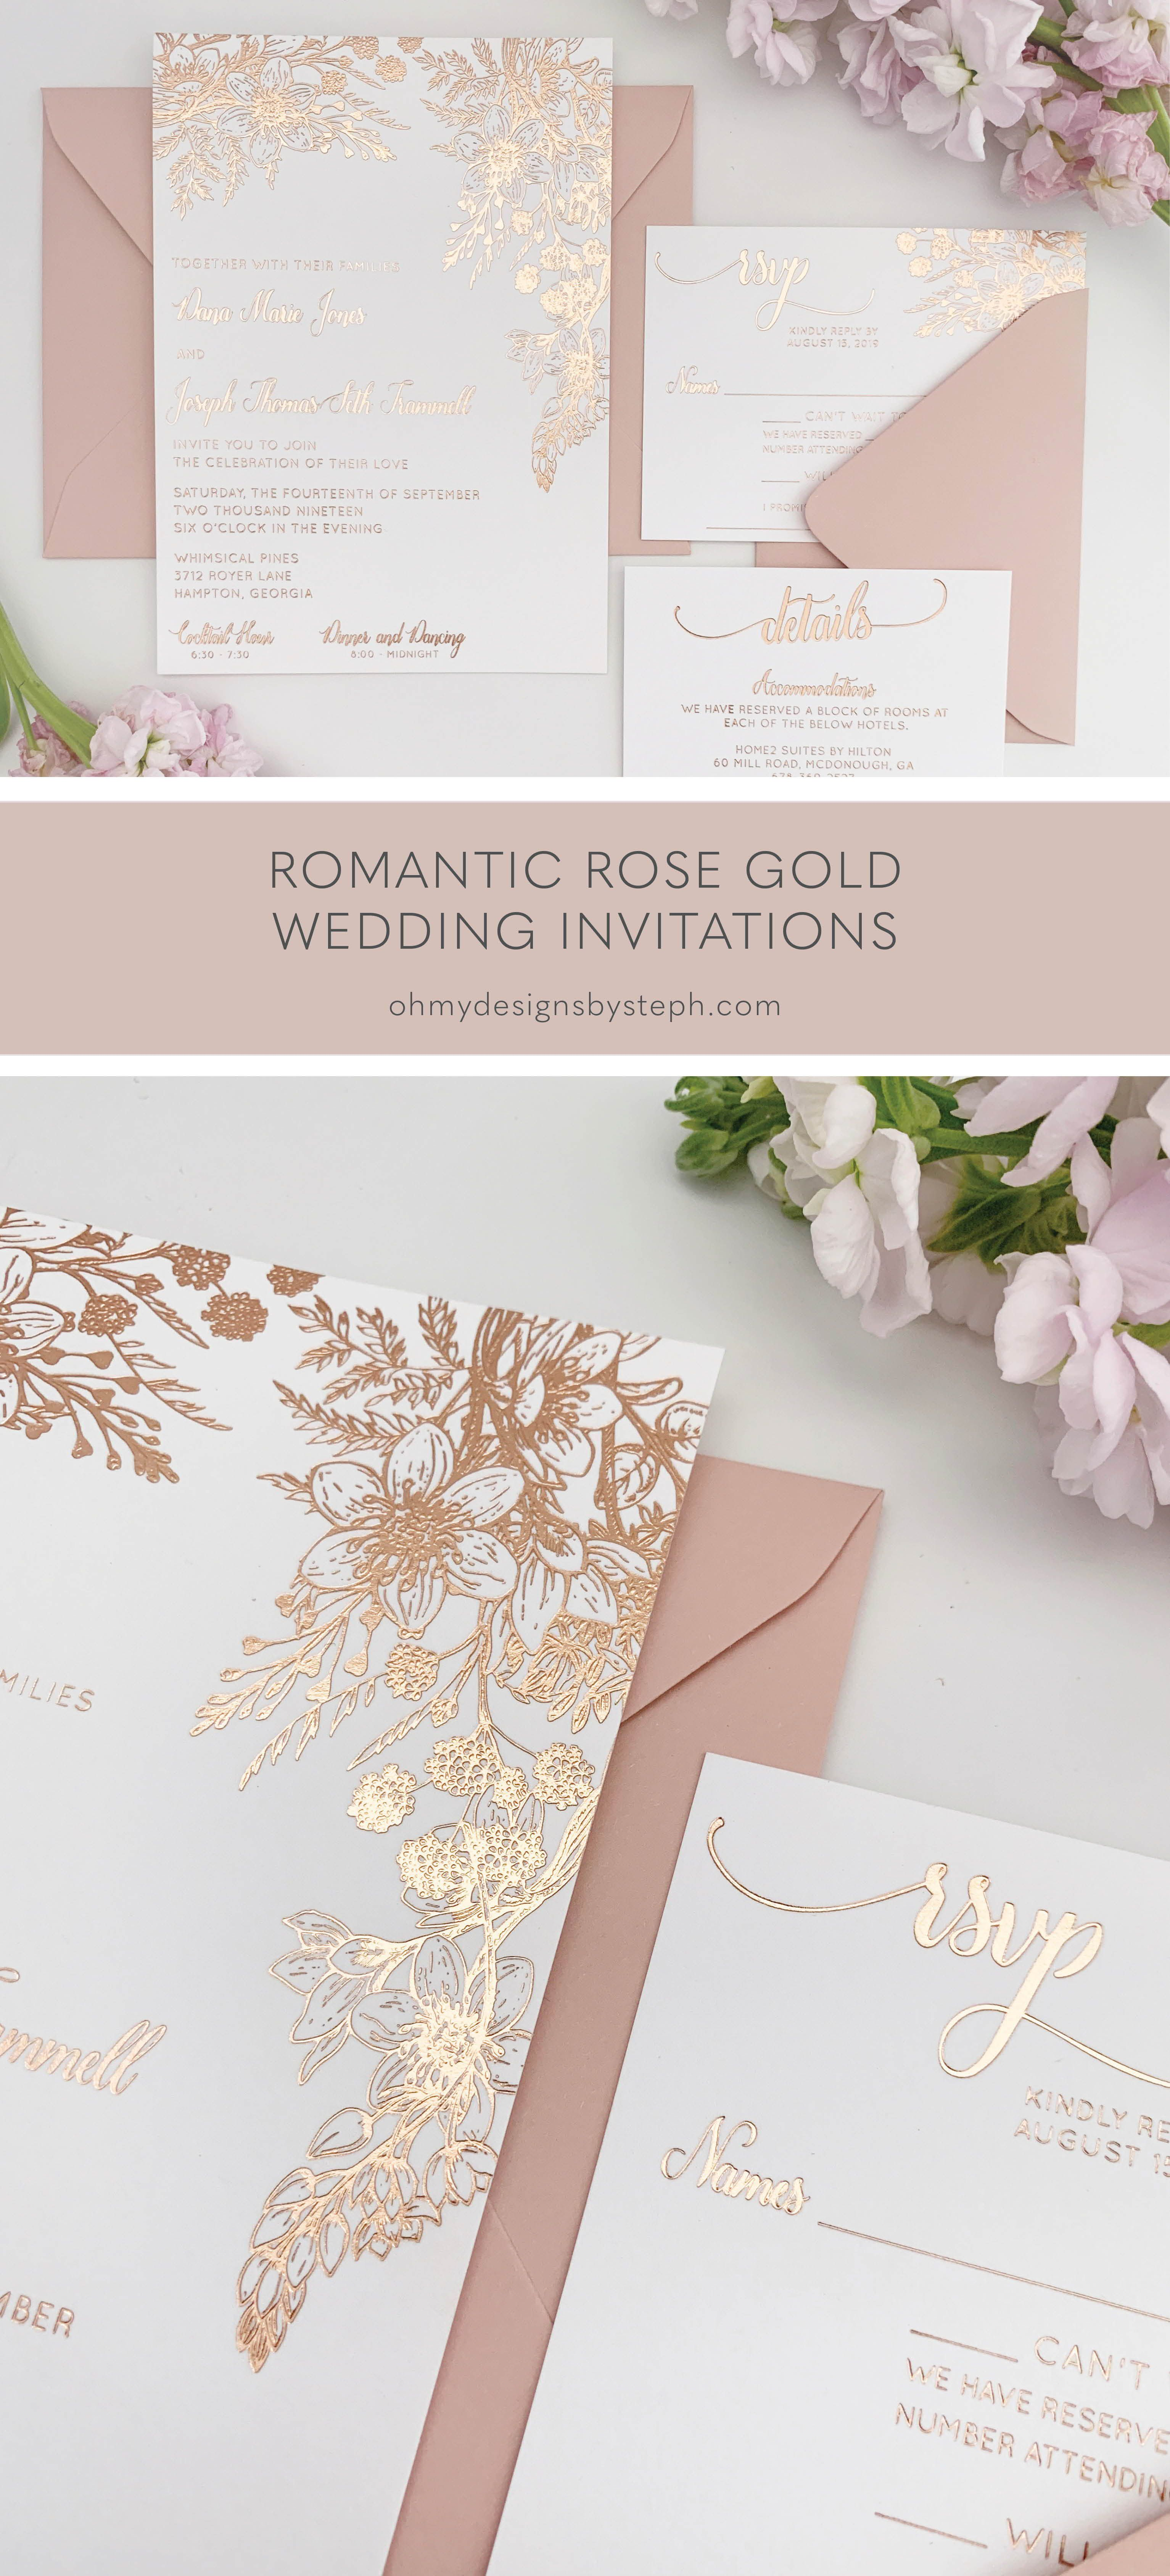 Rose Gold Wedding Invitations With Foil Florals Oh My Designs By Steph Rose Gold Wedding Invitations Floral Wedding Invitations Gold Wedding Invitations